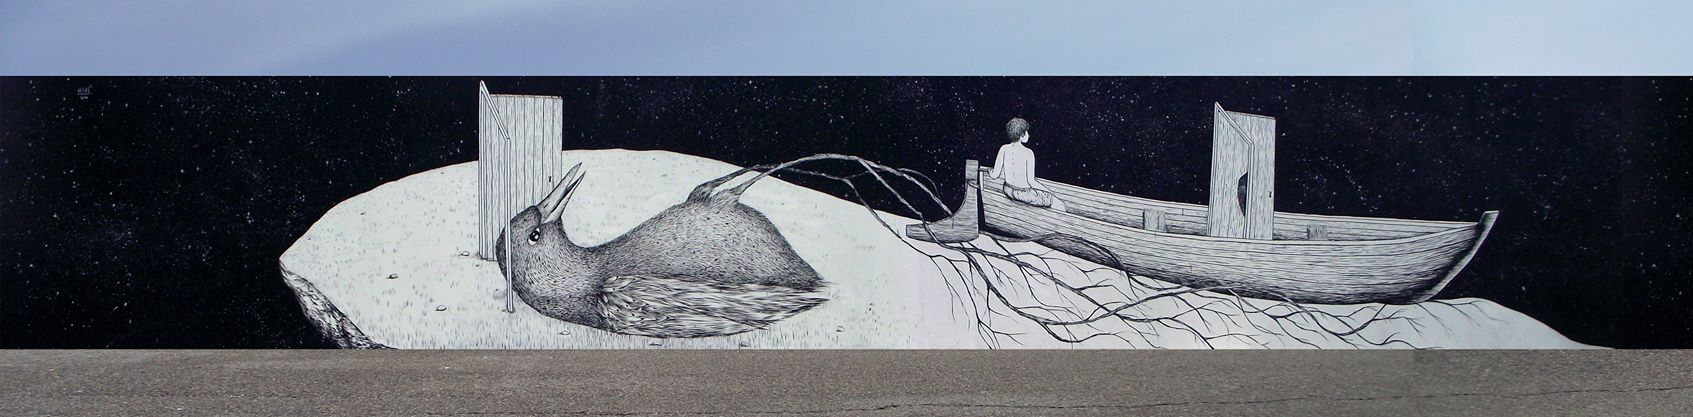 hope-gig-new-mural-for-vedo-a-colori-festival-01